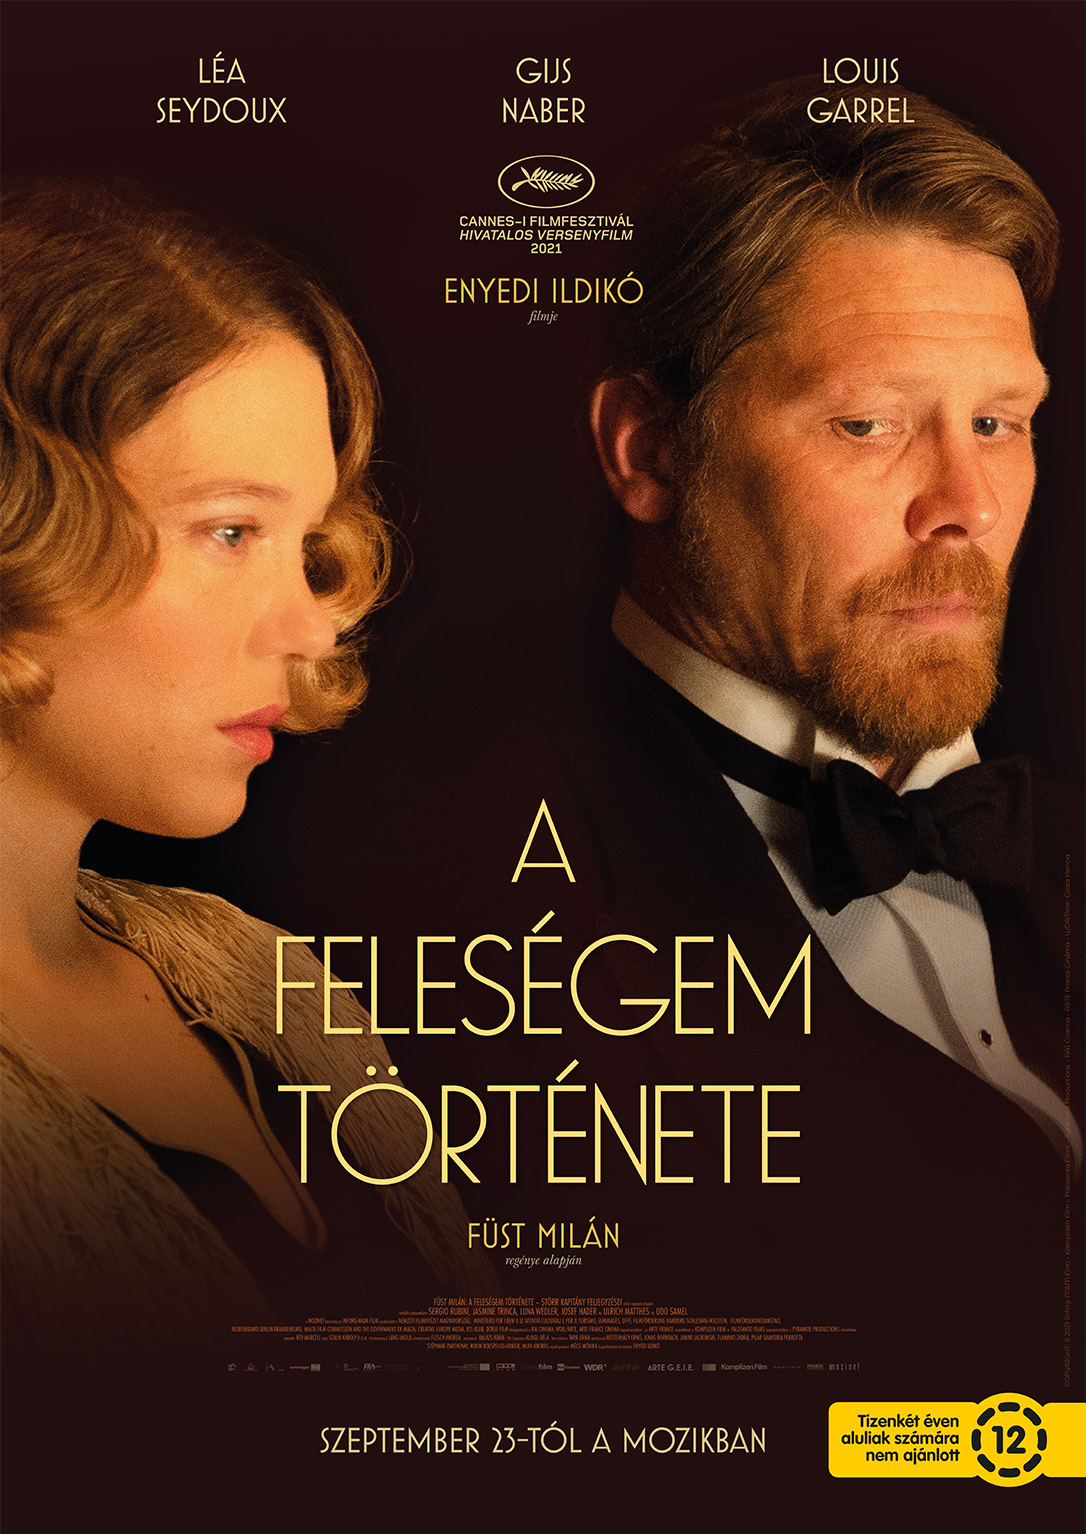 A feleségem története (A feleségem története / The Story of My Wife) 2020